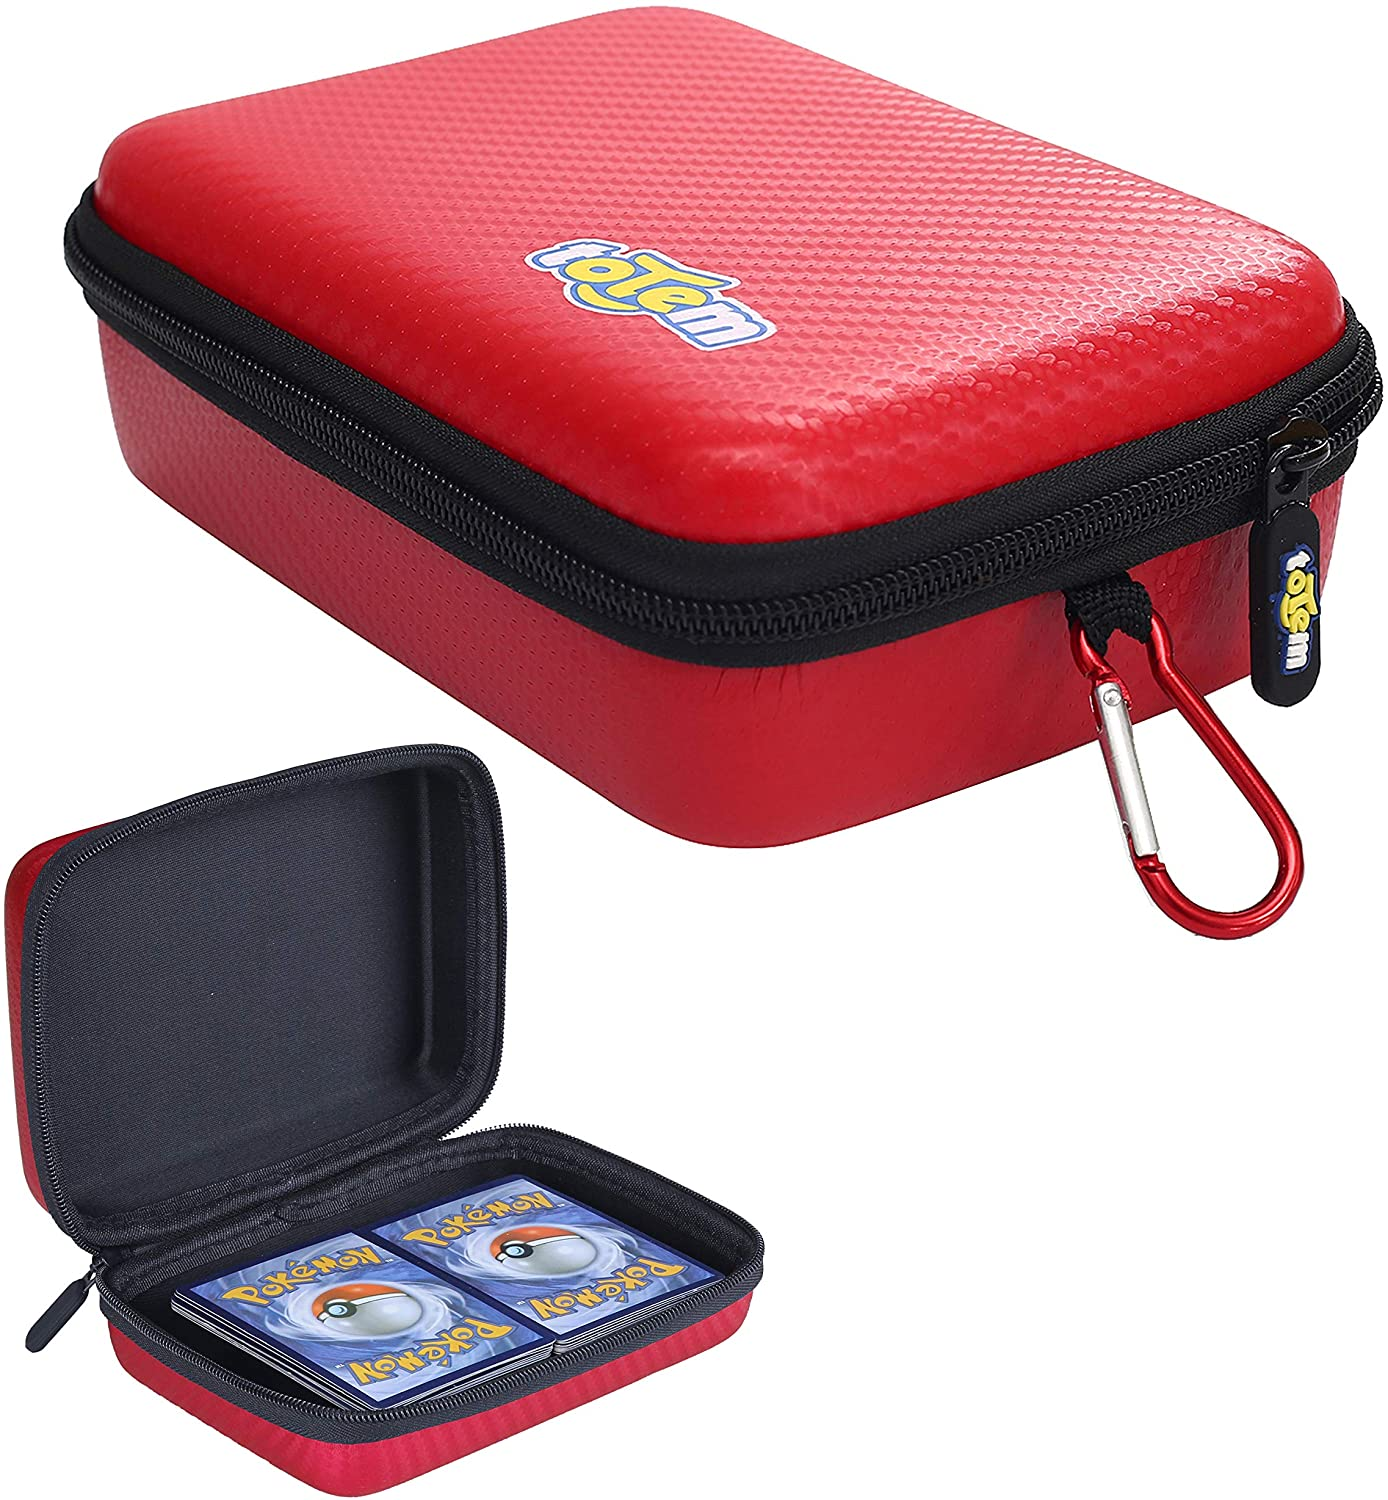 Totem Word 200+ Card Zipper Case Organizer - Compatible with Pokemon, Yu-Gi-Oh, and Magic The Gathering Cards - Perfect for Card Collectors, Storage & Protection